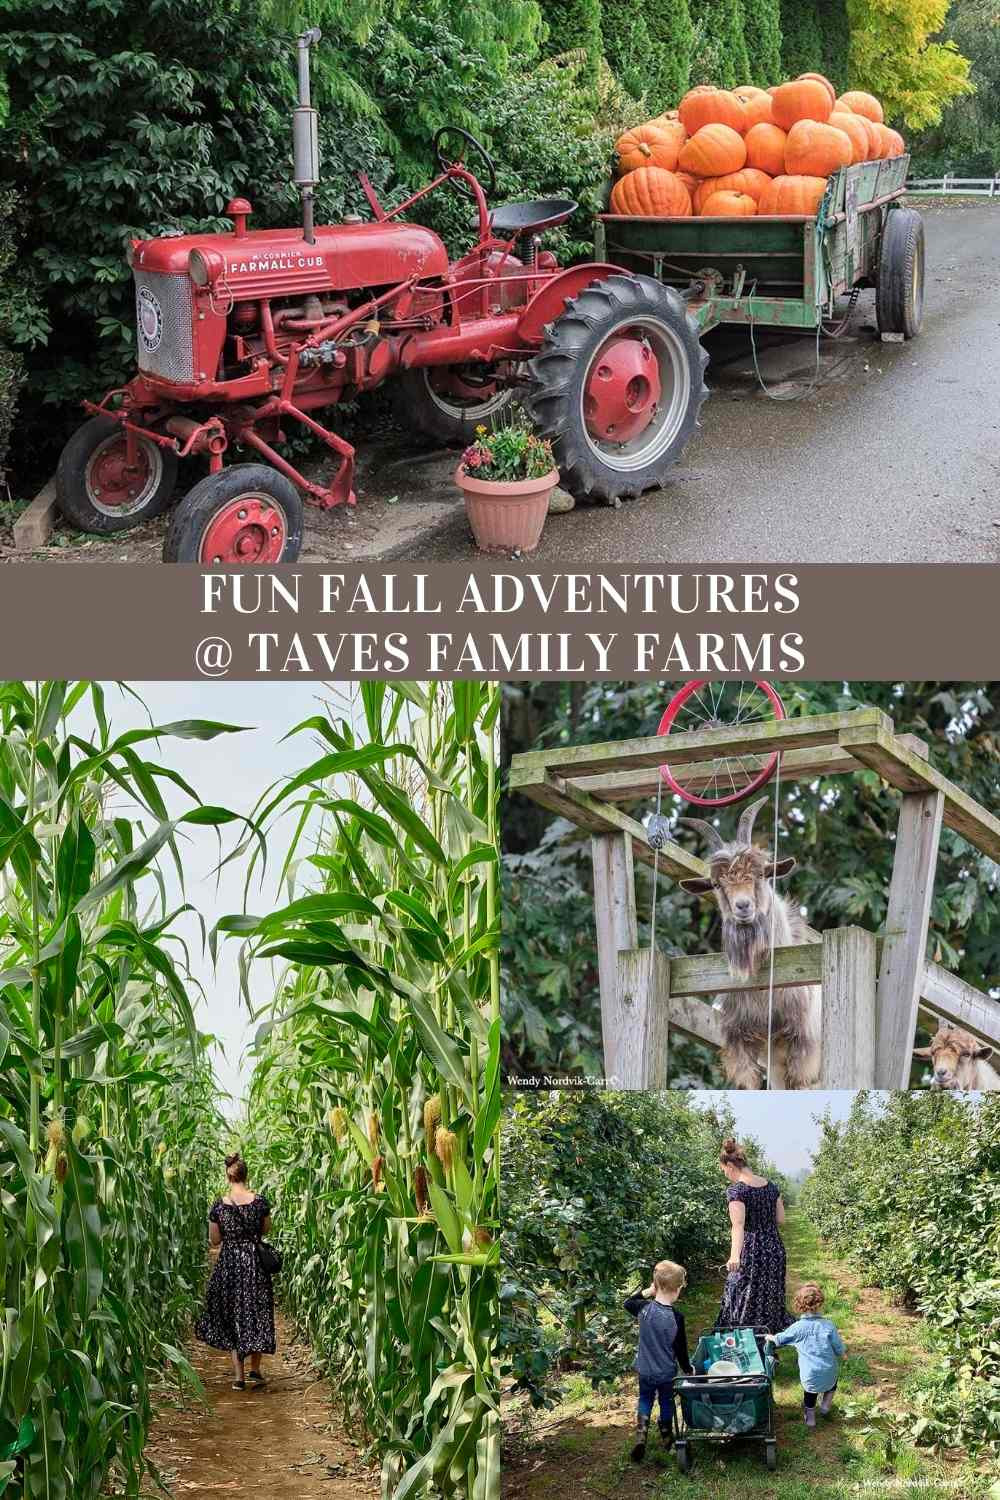 Adventures at Taves Family Farms Applebarn Pumpkin Patch and Corn Maze with video